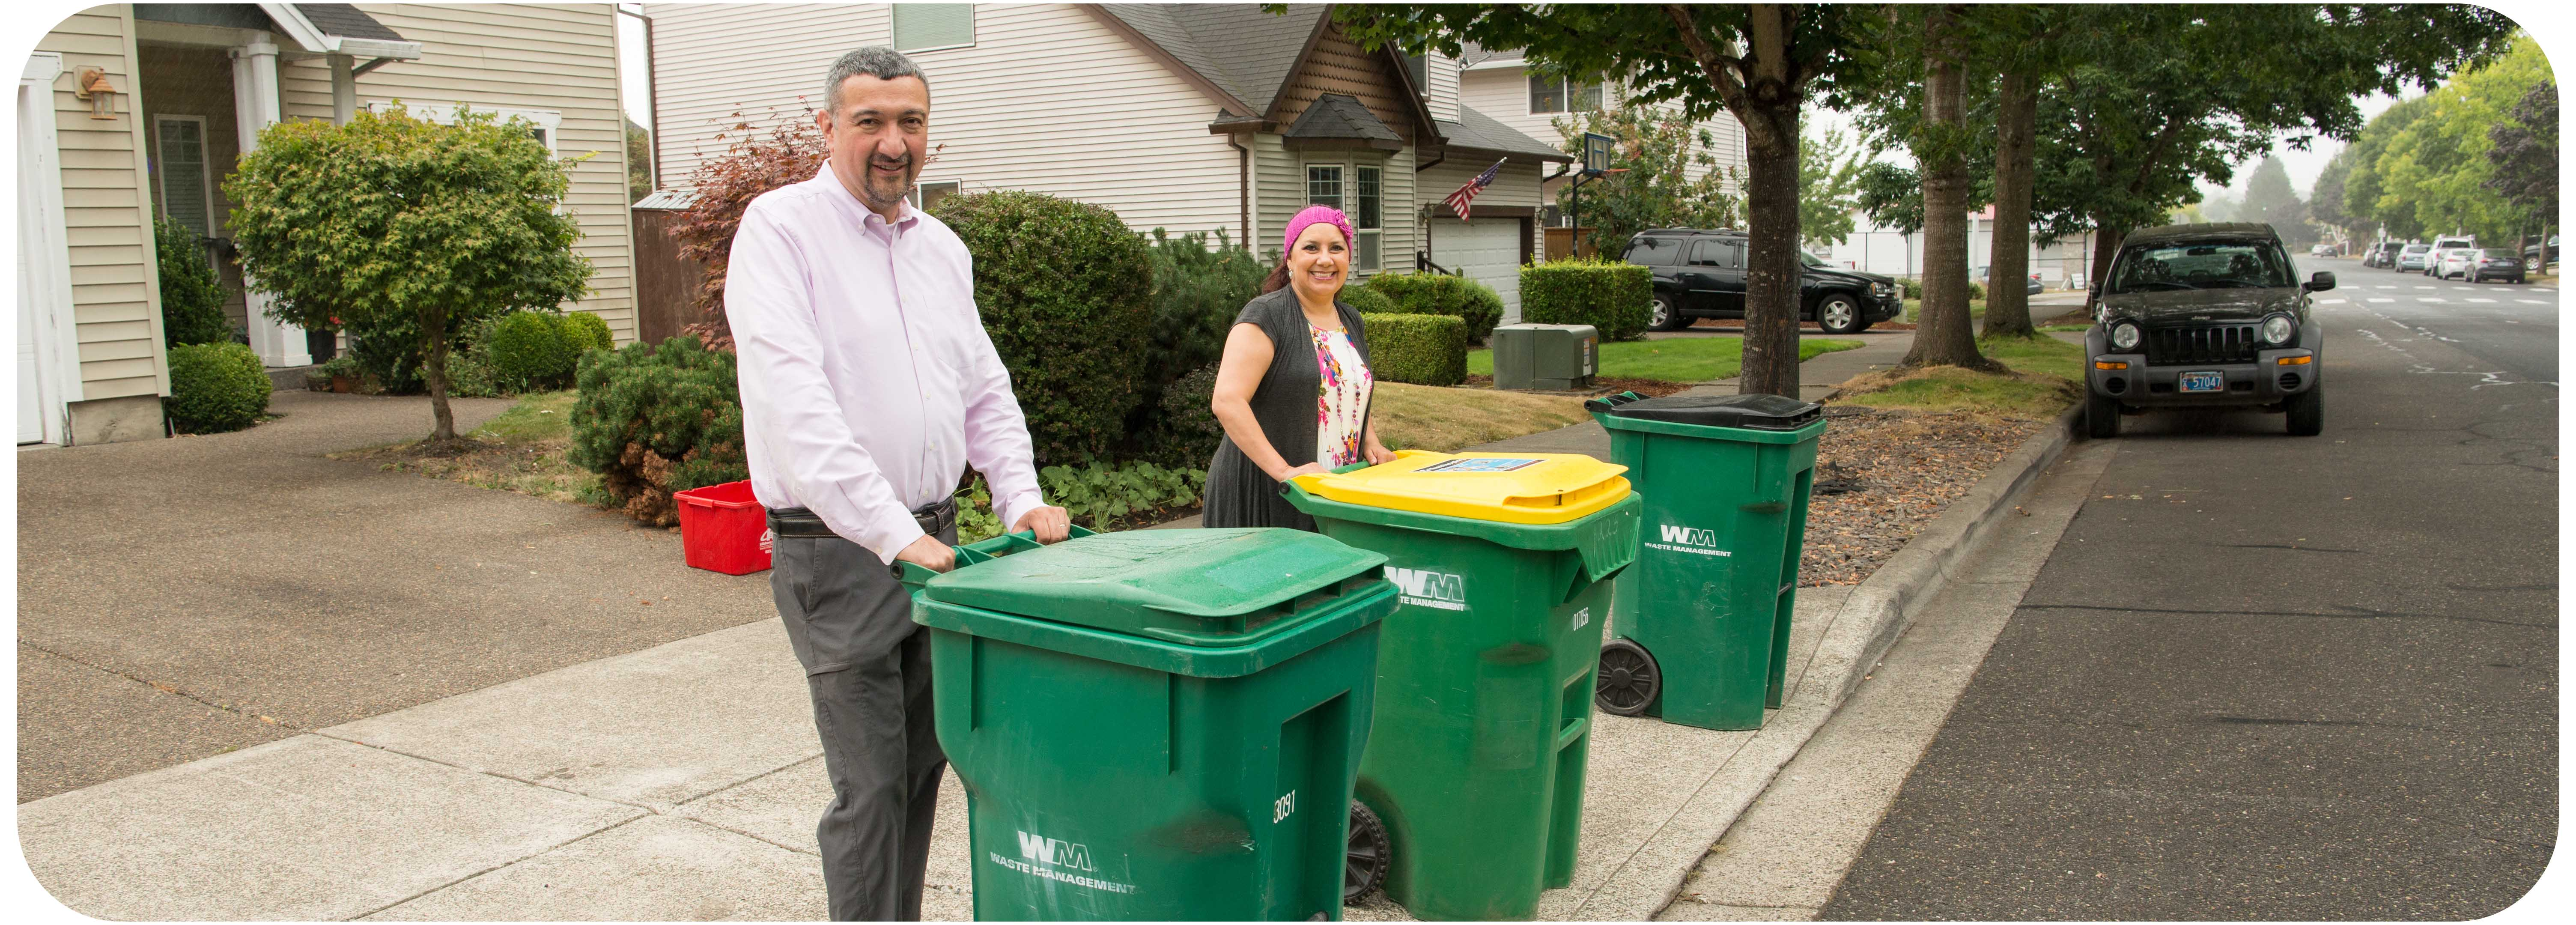 Garbage Recycling Services